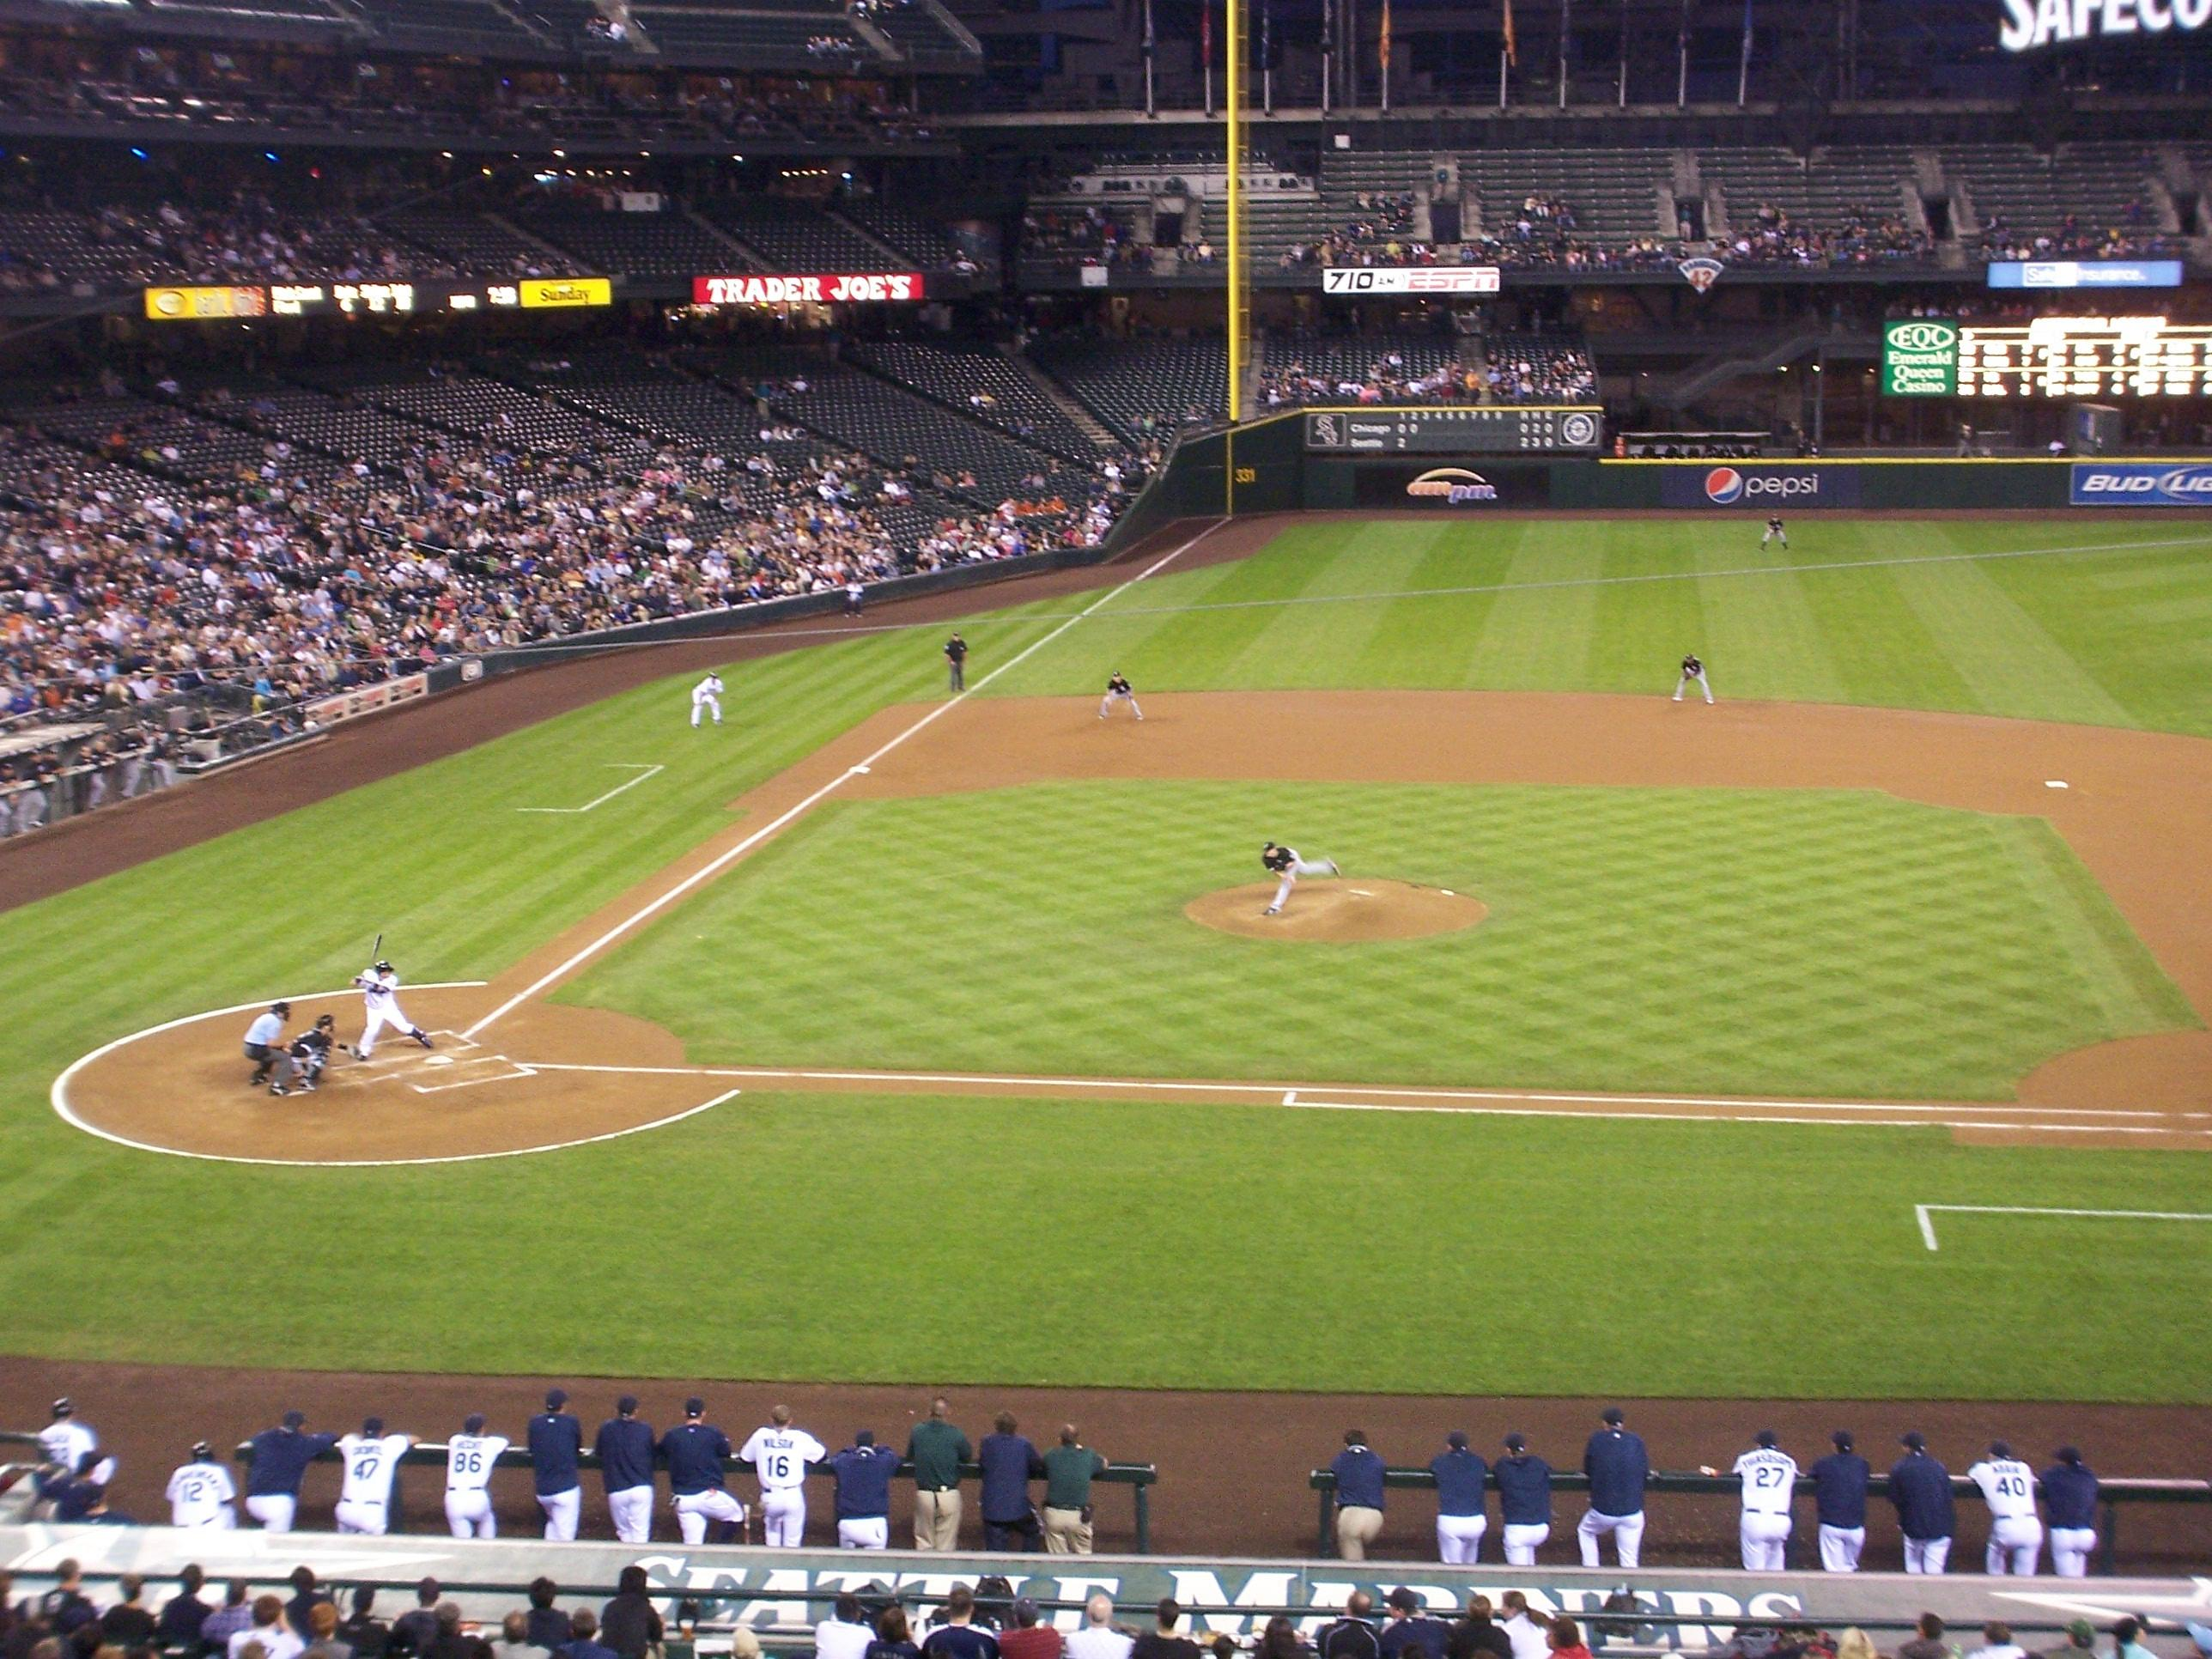 T-Mobile Park Section 223 Row 12